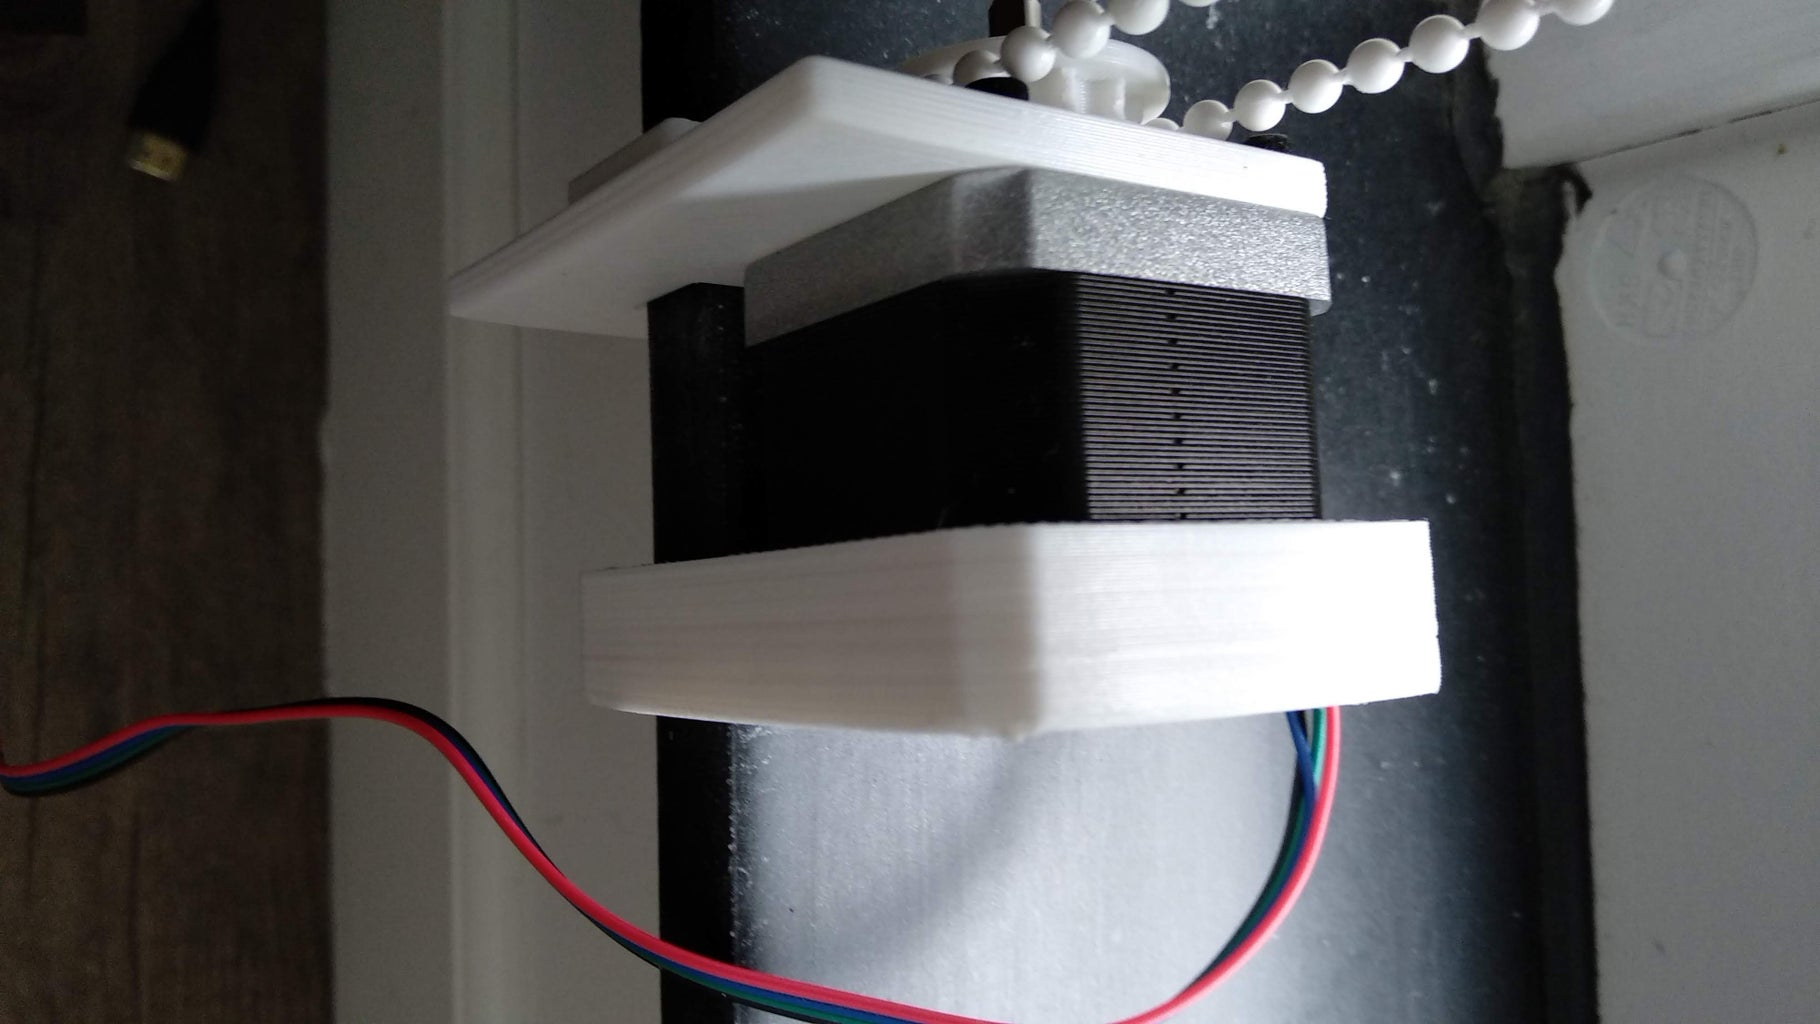 Stepper Motor, Gears and Handles